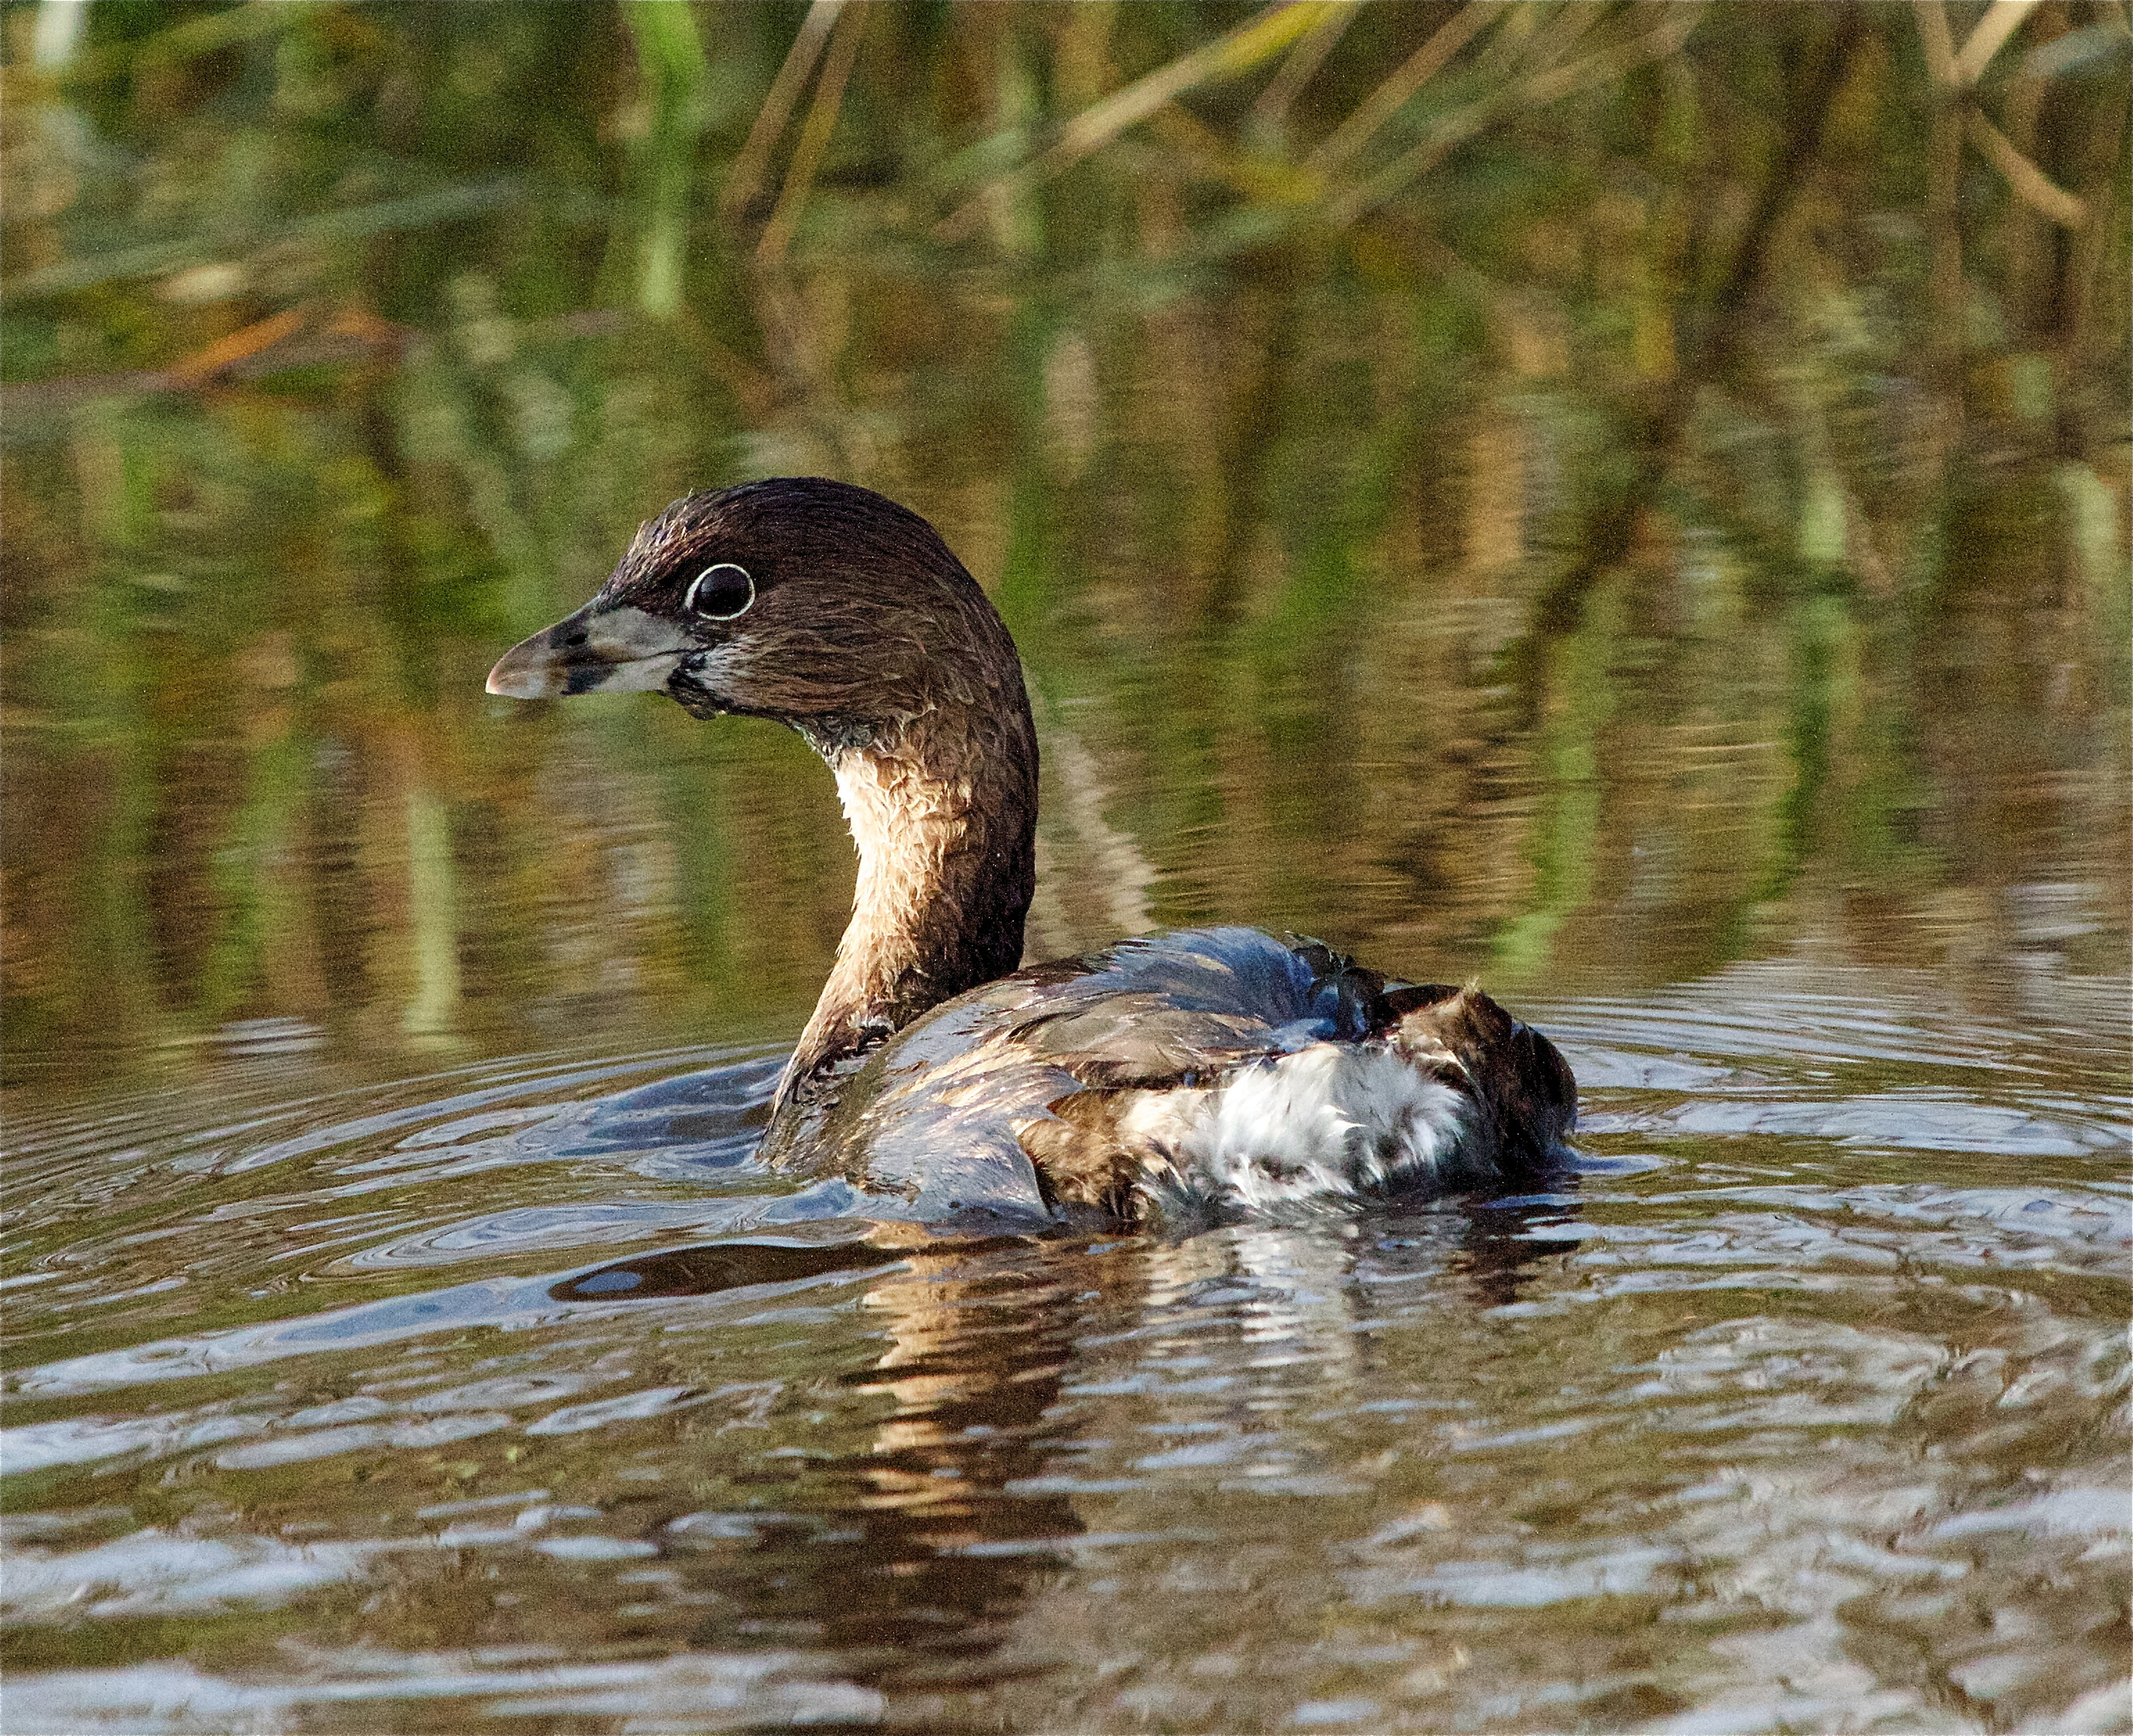 A Pied Billed Grebe emerges from the marsh sporting its mating beak stripe and white eye ring.